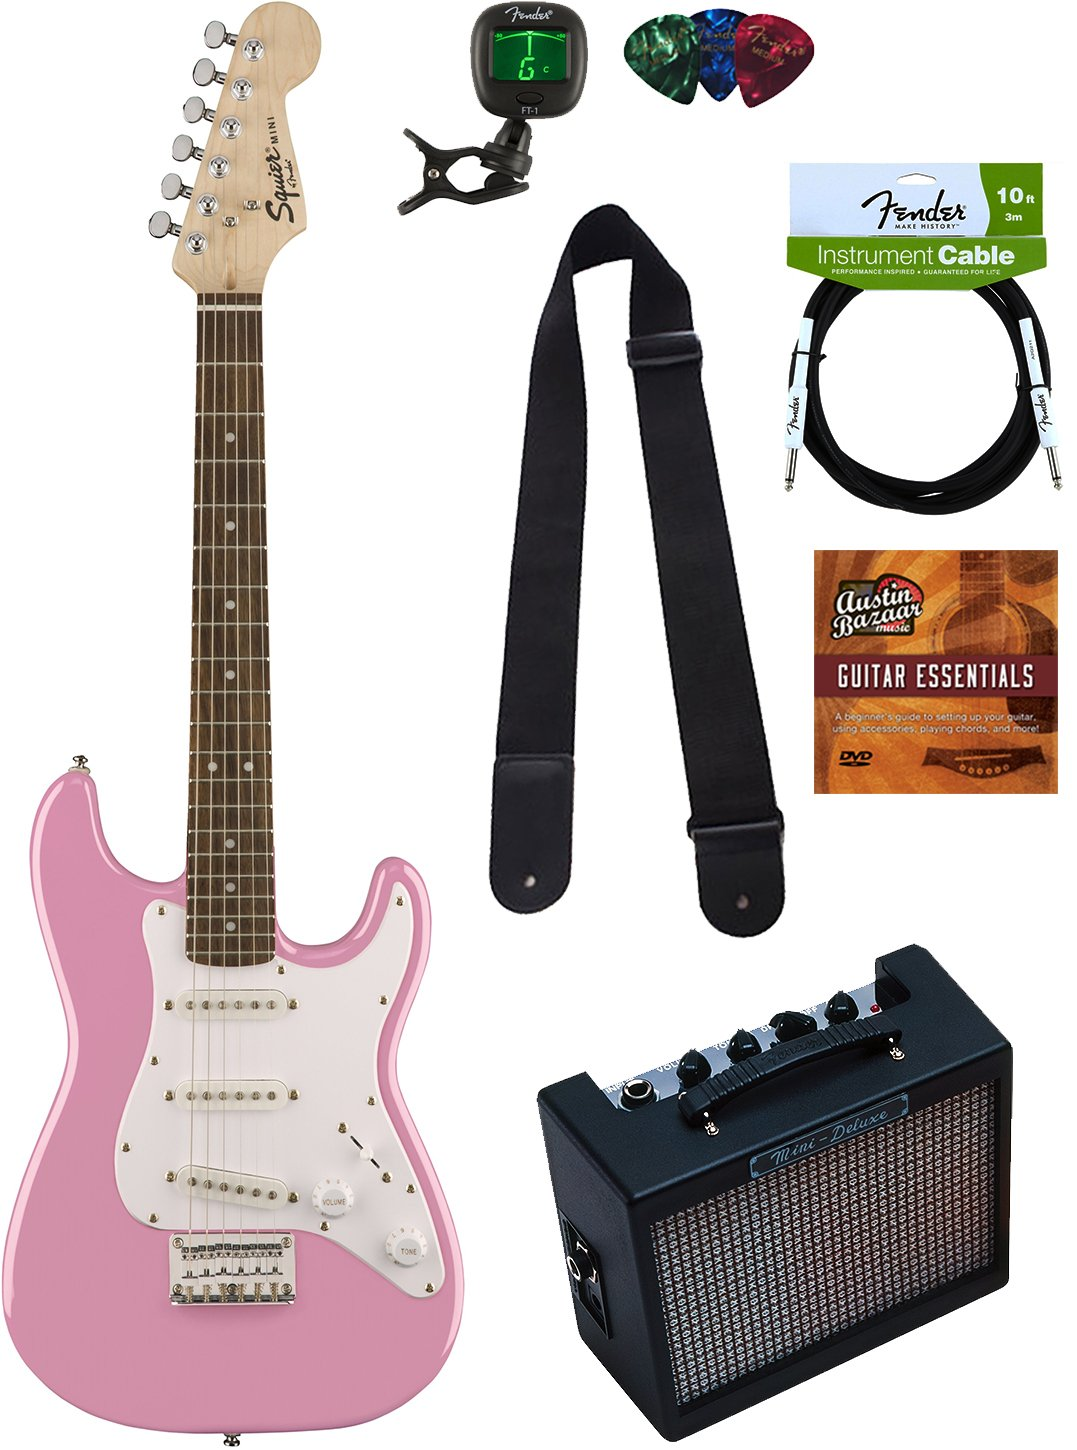 Squier by Fender Mini Strat Electric Guitar - Pink Bundle with Amplifier, Instrument Cable, Tuner, Strap, Picks, Austin Bazaar Instructional DVD, and Polishing Cloth by Squier